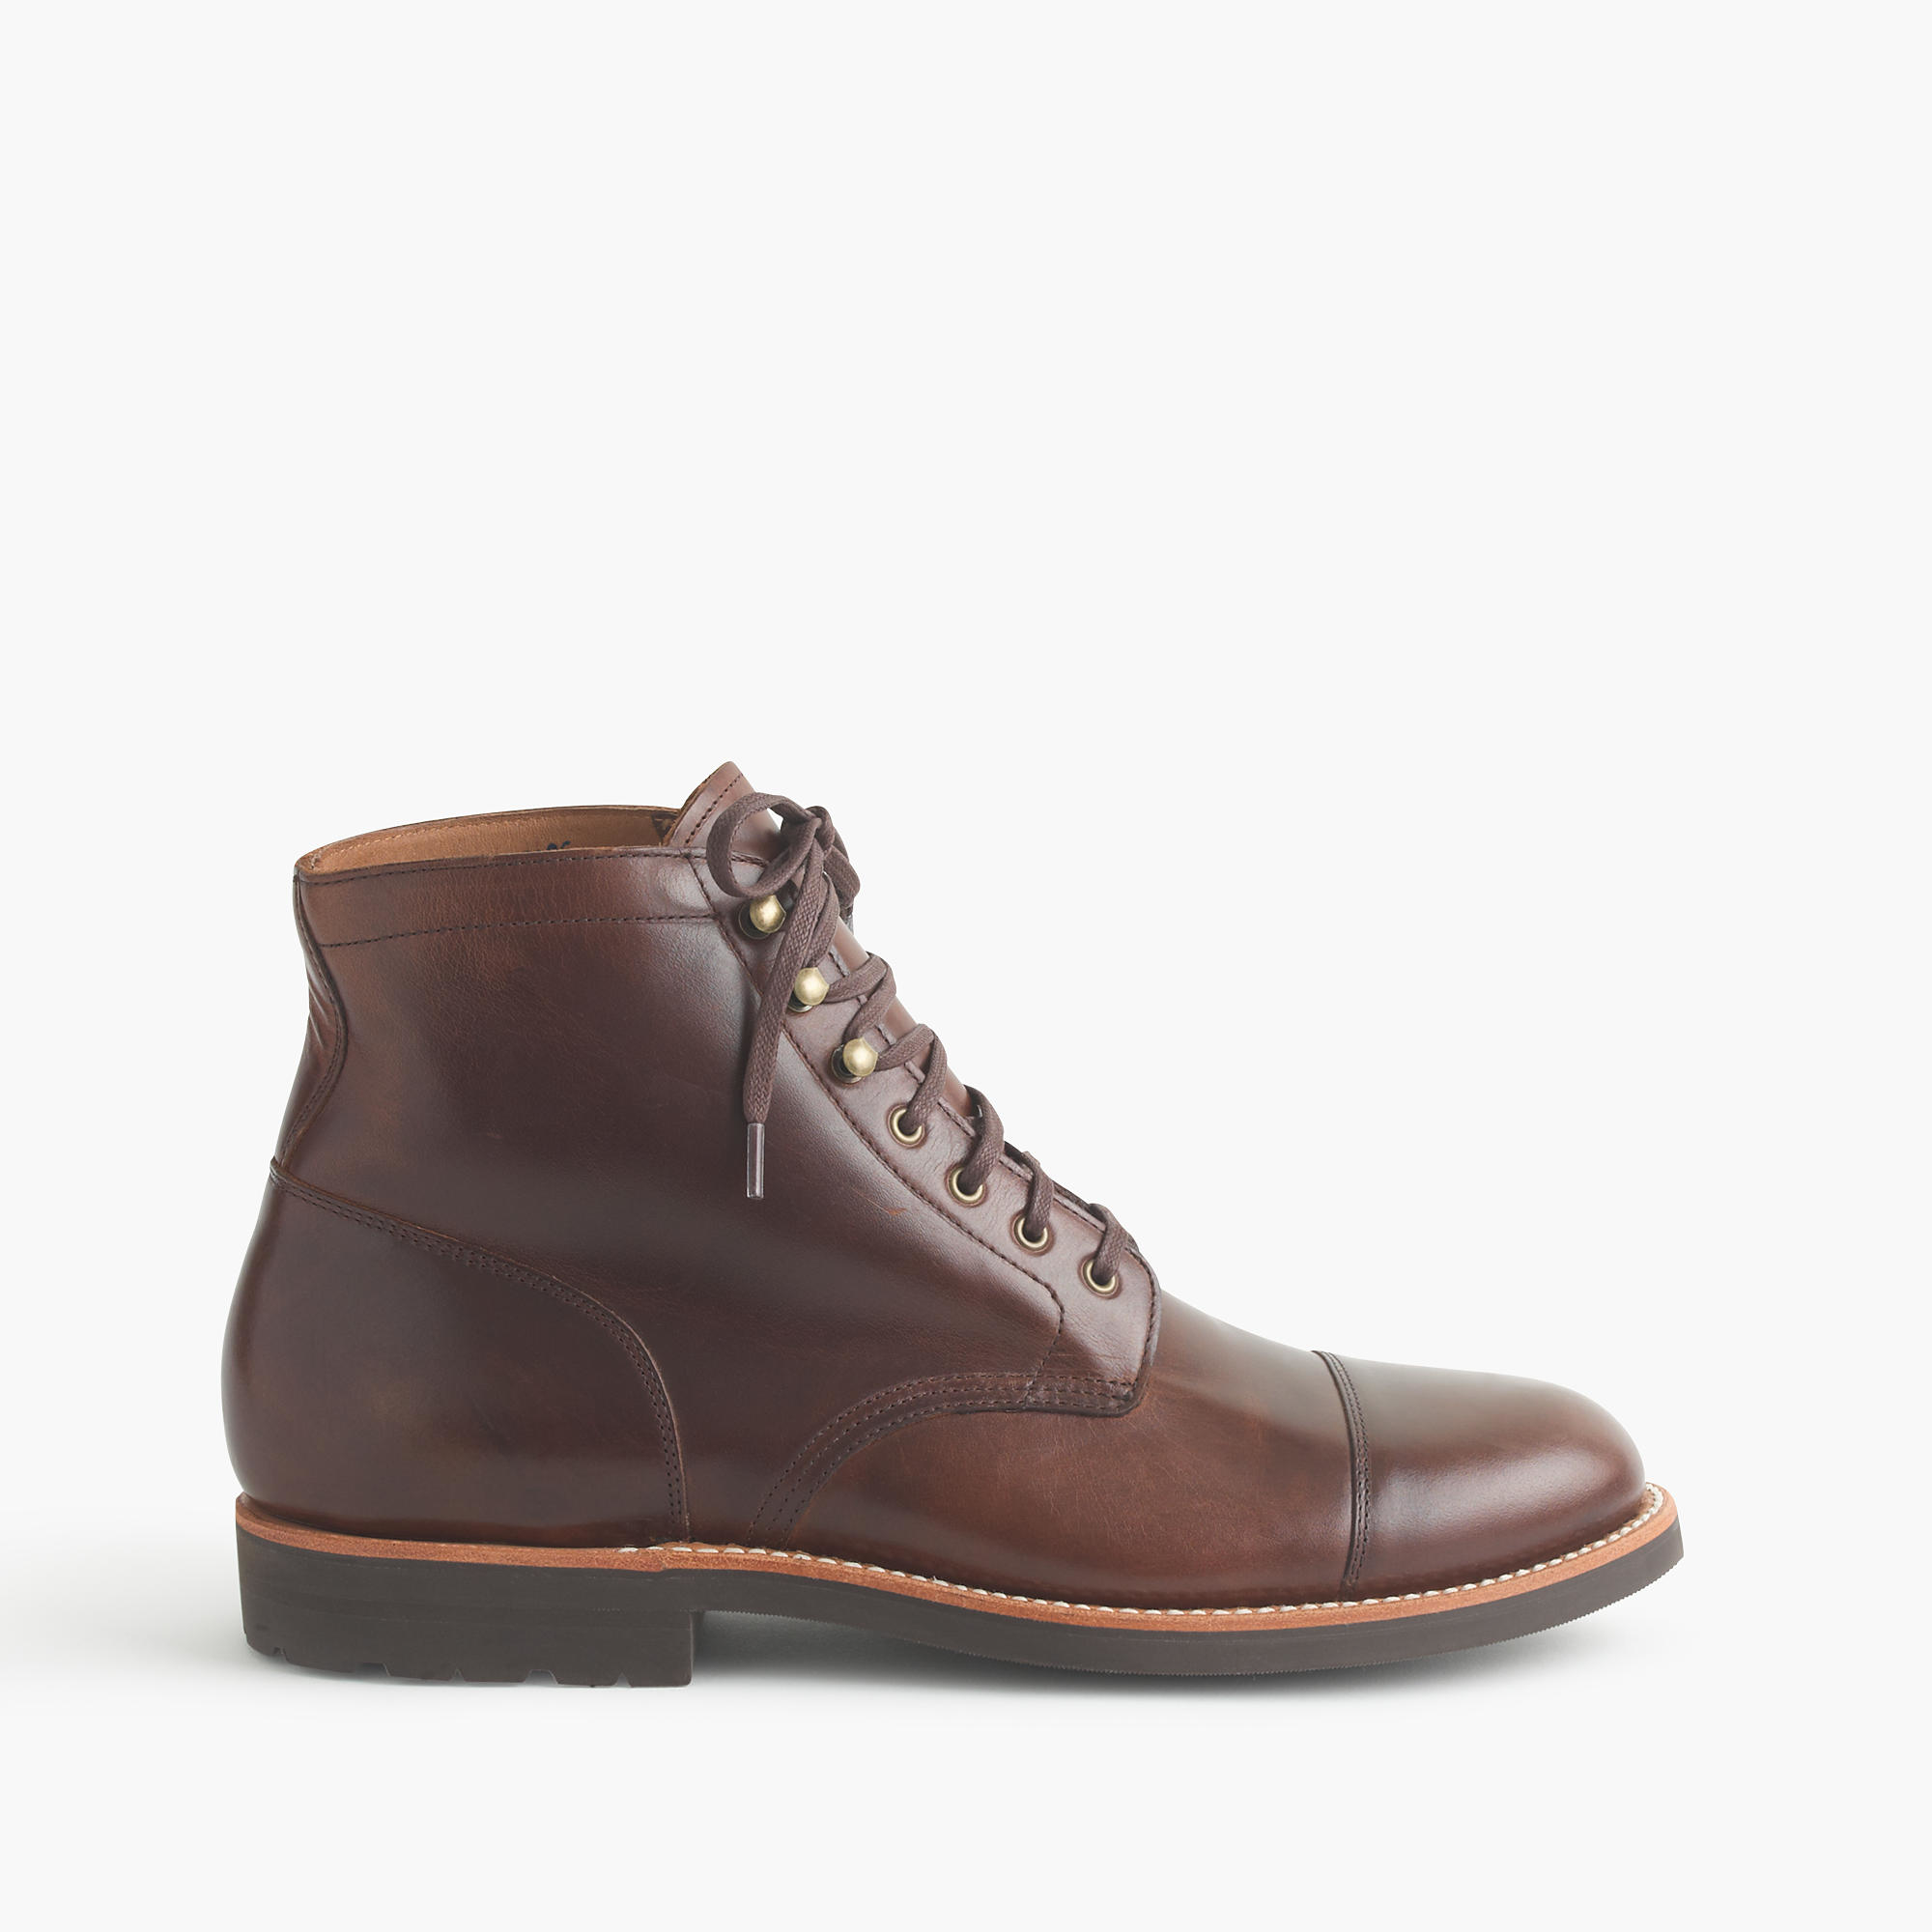 j crew kenton leather cap toe boots in brown for lyst